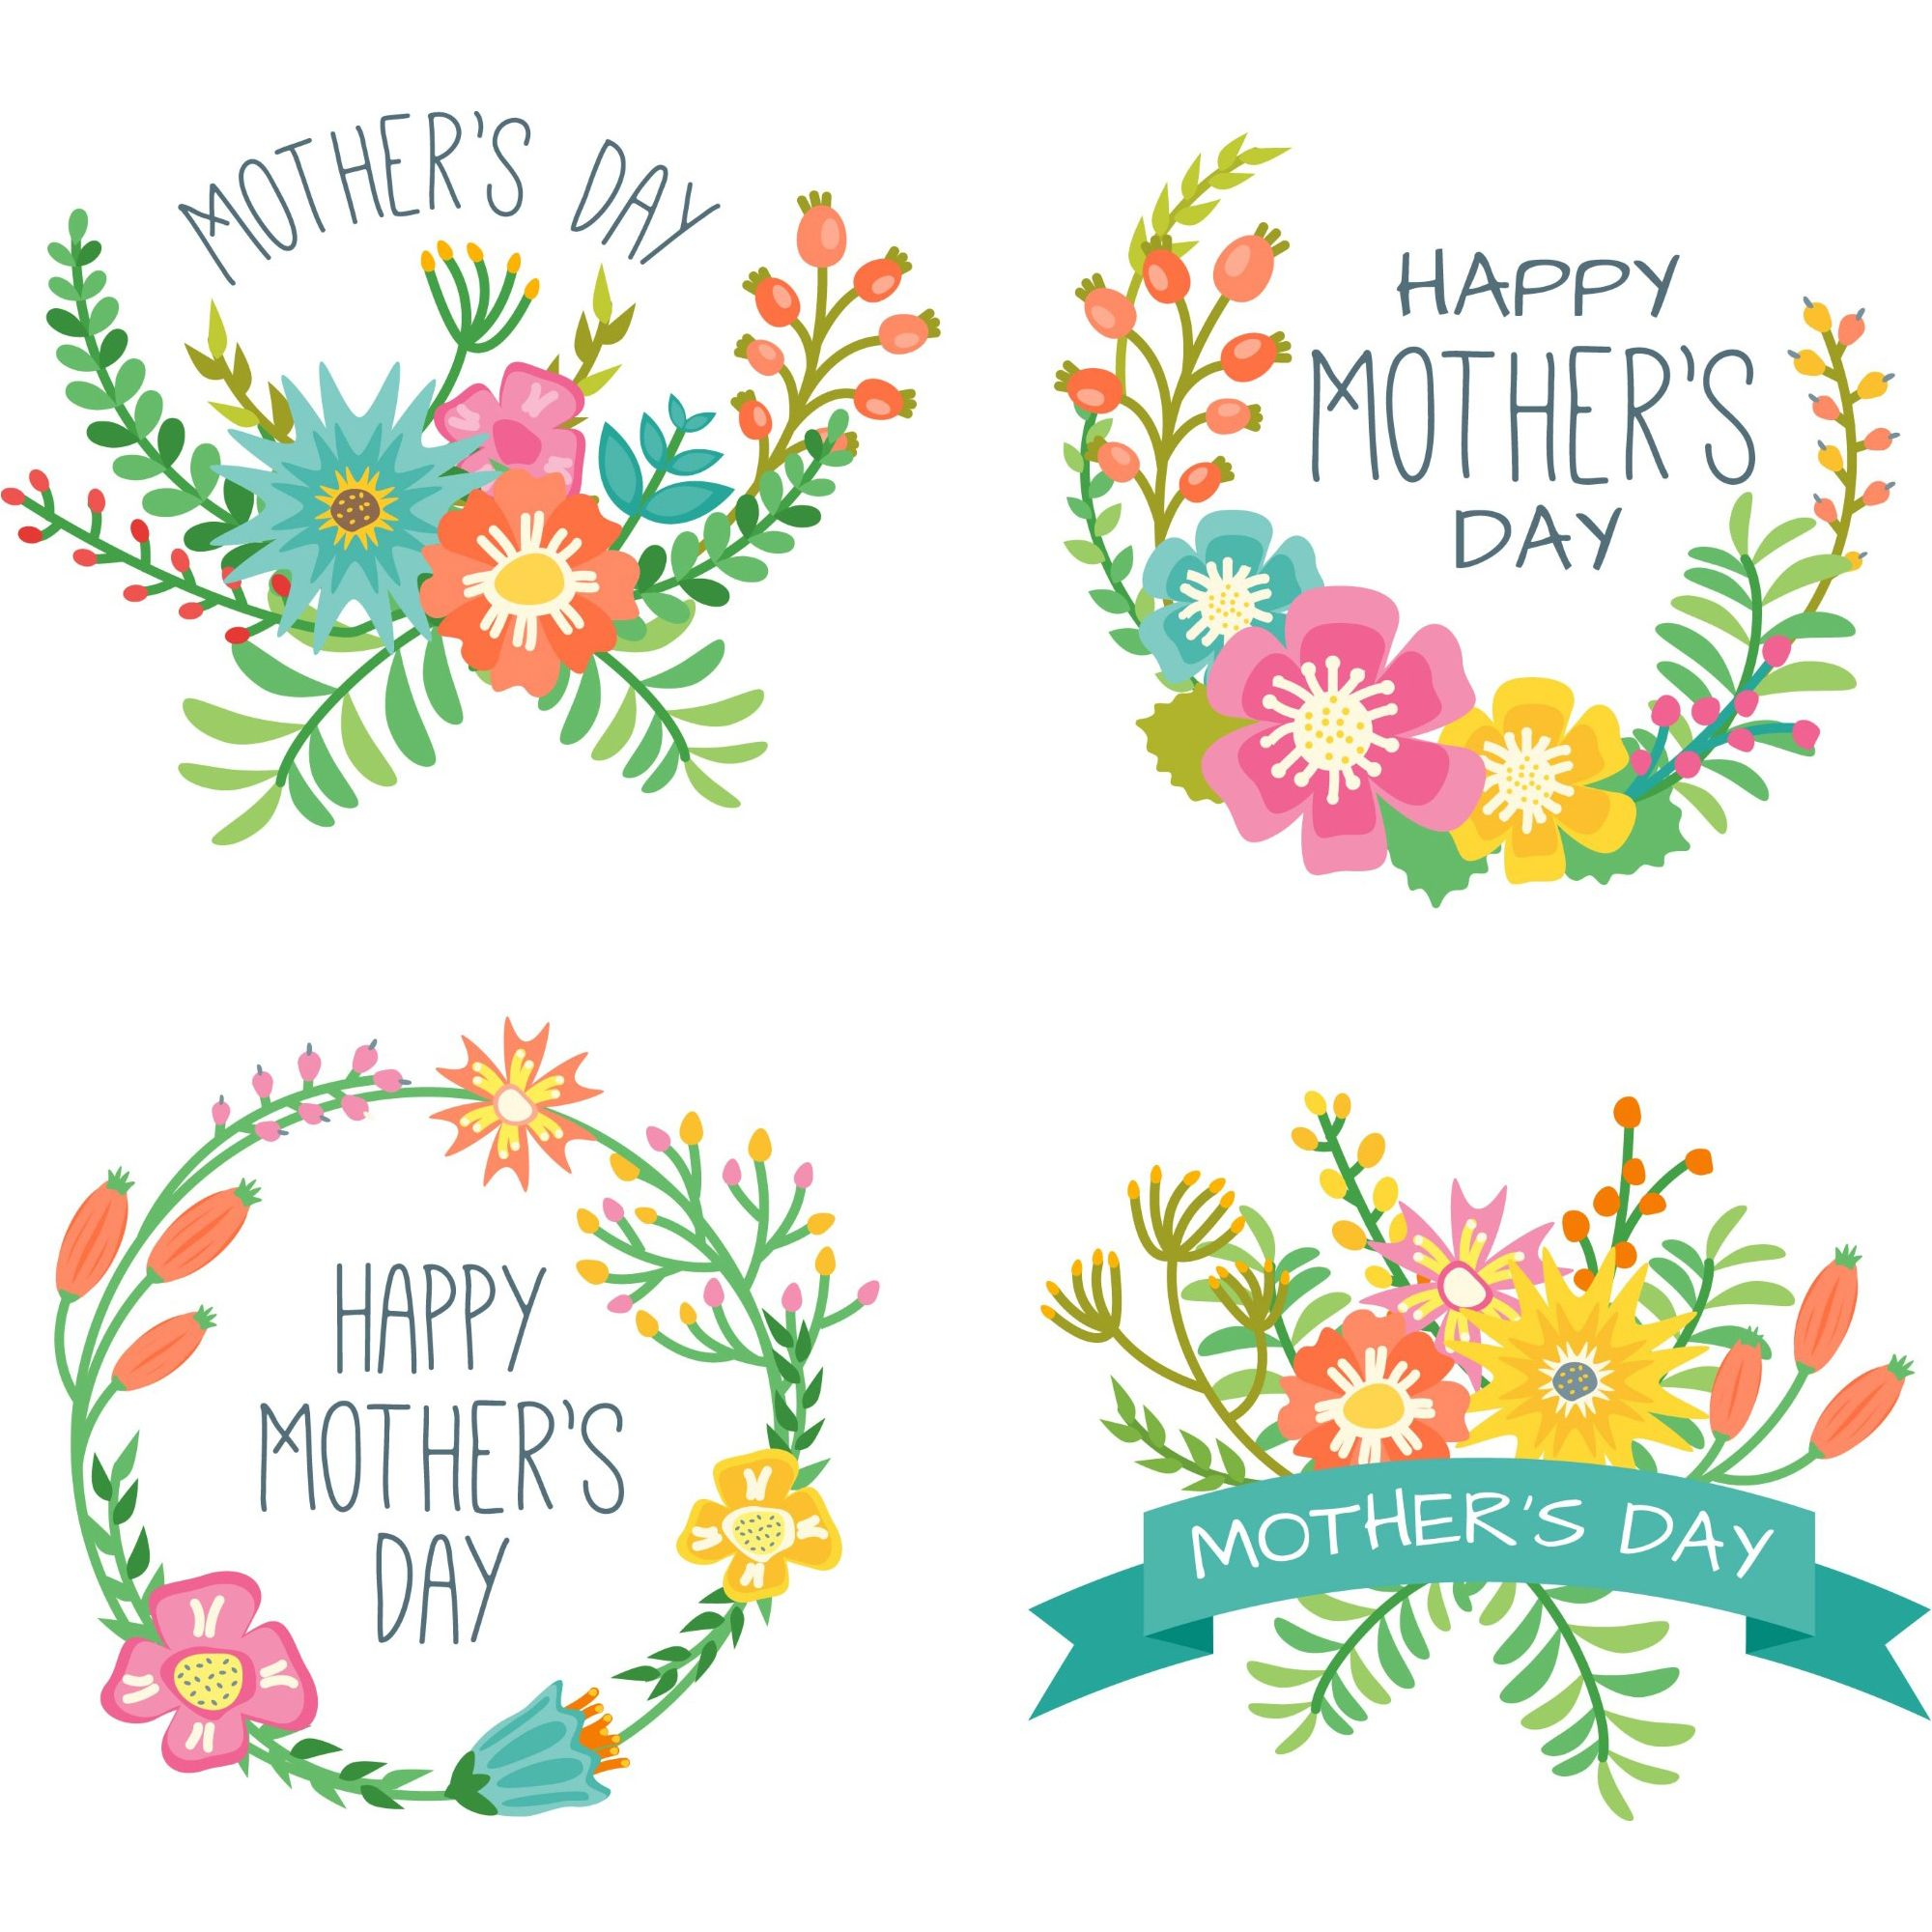 Mothers Day Beautiful Awesome Flowers Wreaths Collection Mother S Day Gift Card Happy Mothers Day Clipart Mother S Day Printables